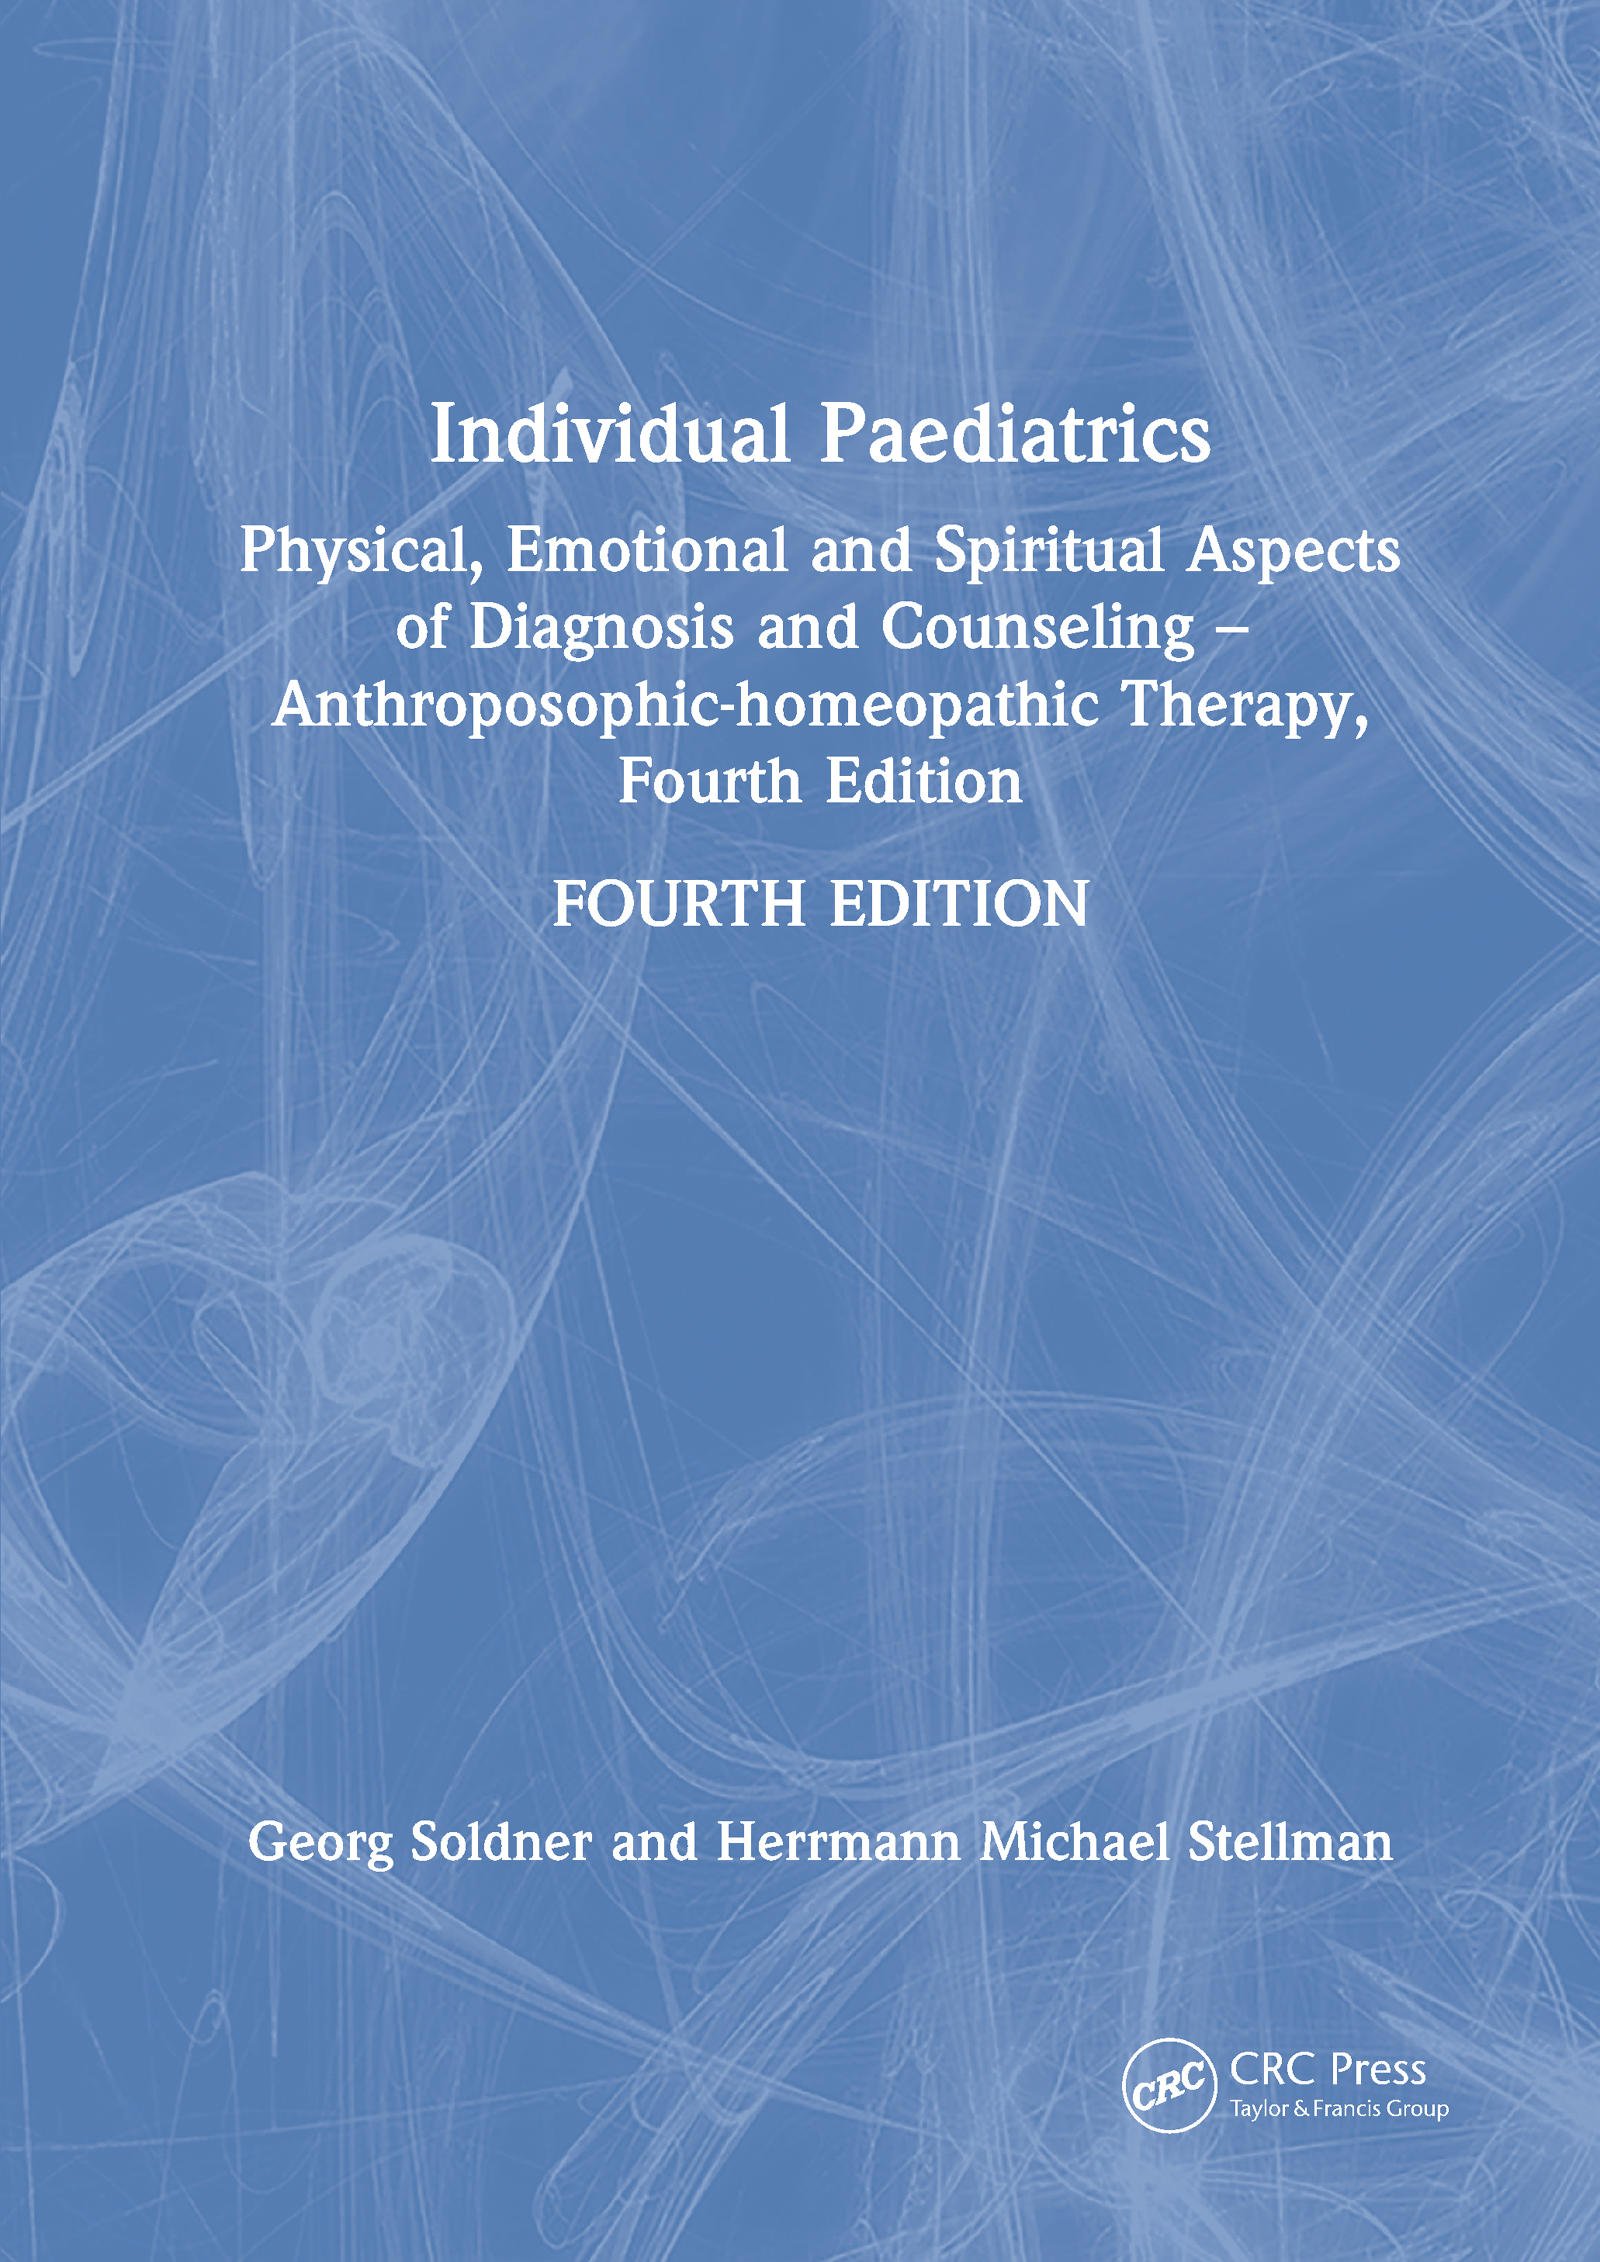 Individual Paediatrics: Physical, Emotional and Spiritual Aspects of Diagnosis and Counseling -- Anthroposophic-homeopathic Therapy, Fourth Edition, 4th Edition (Hardback) book cover